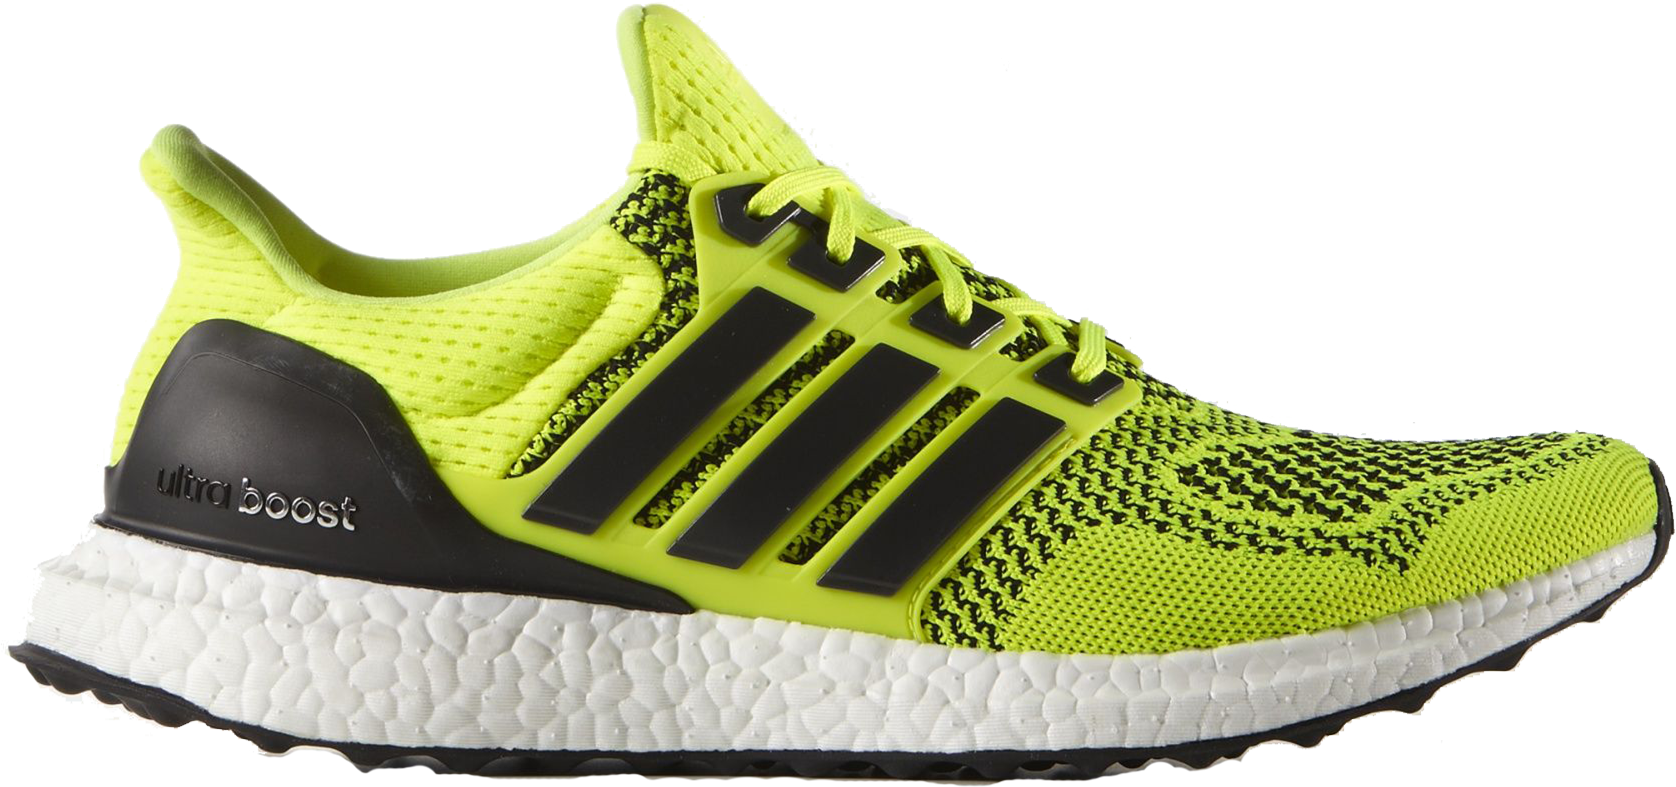 adidas Ultra Boost 1.0 Solar Yellow